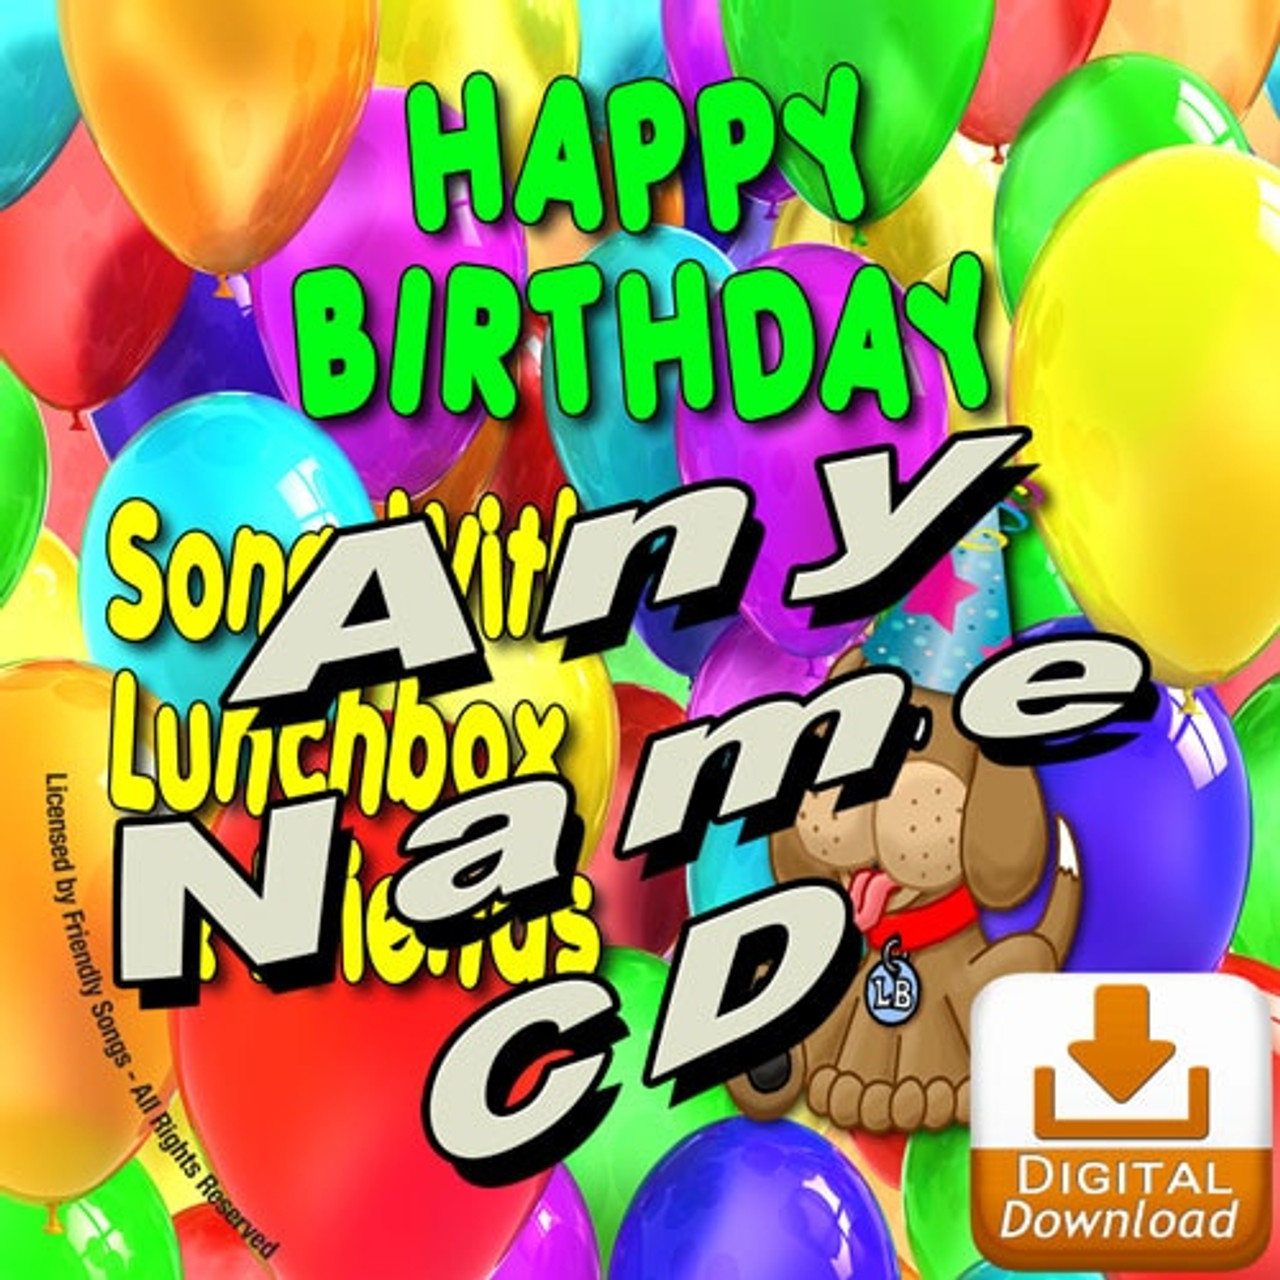 Digital Download Custom Name Personalized Happy Birthday Song Personalized Childrens Music Album Personalized Friendly Songs